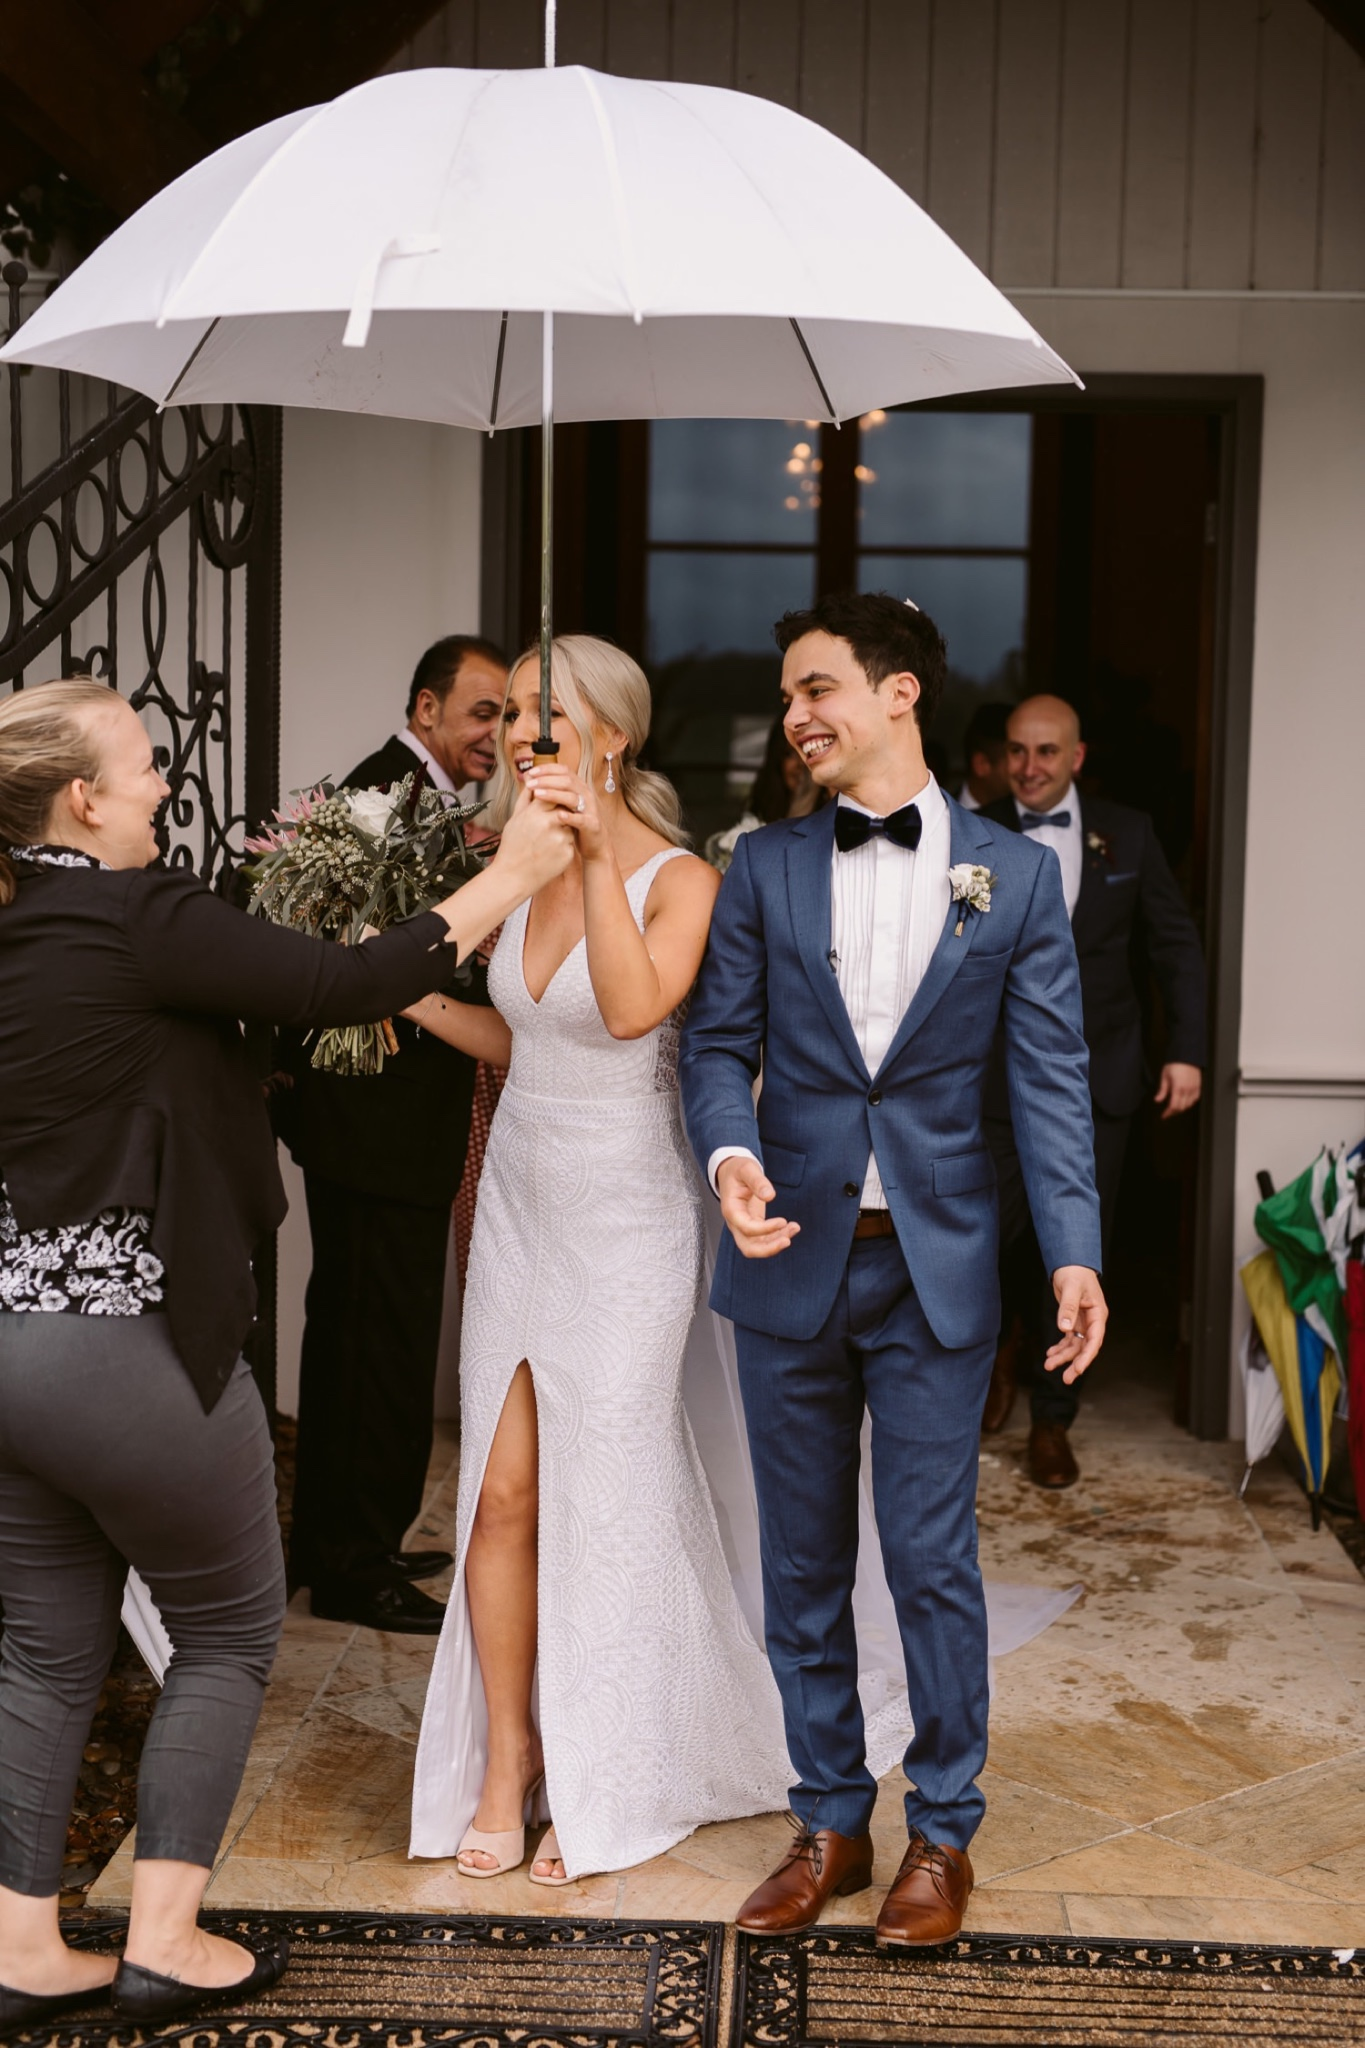 Immerse Yarra Valley Winery Wedding Photography61.jpg